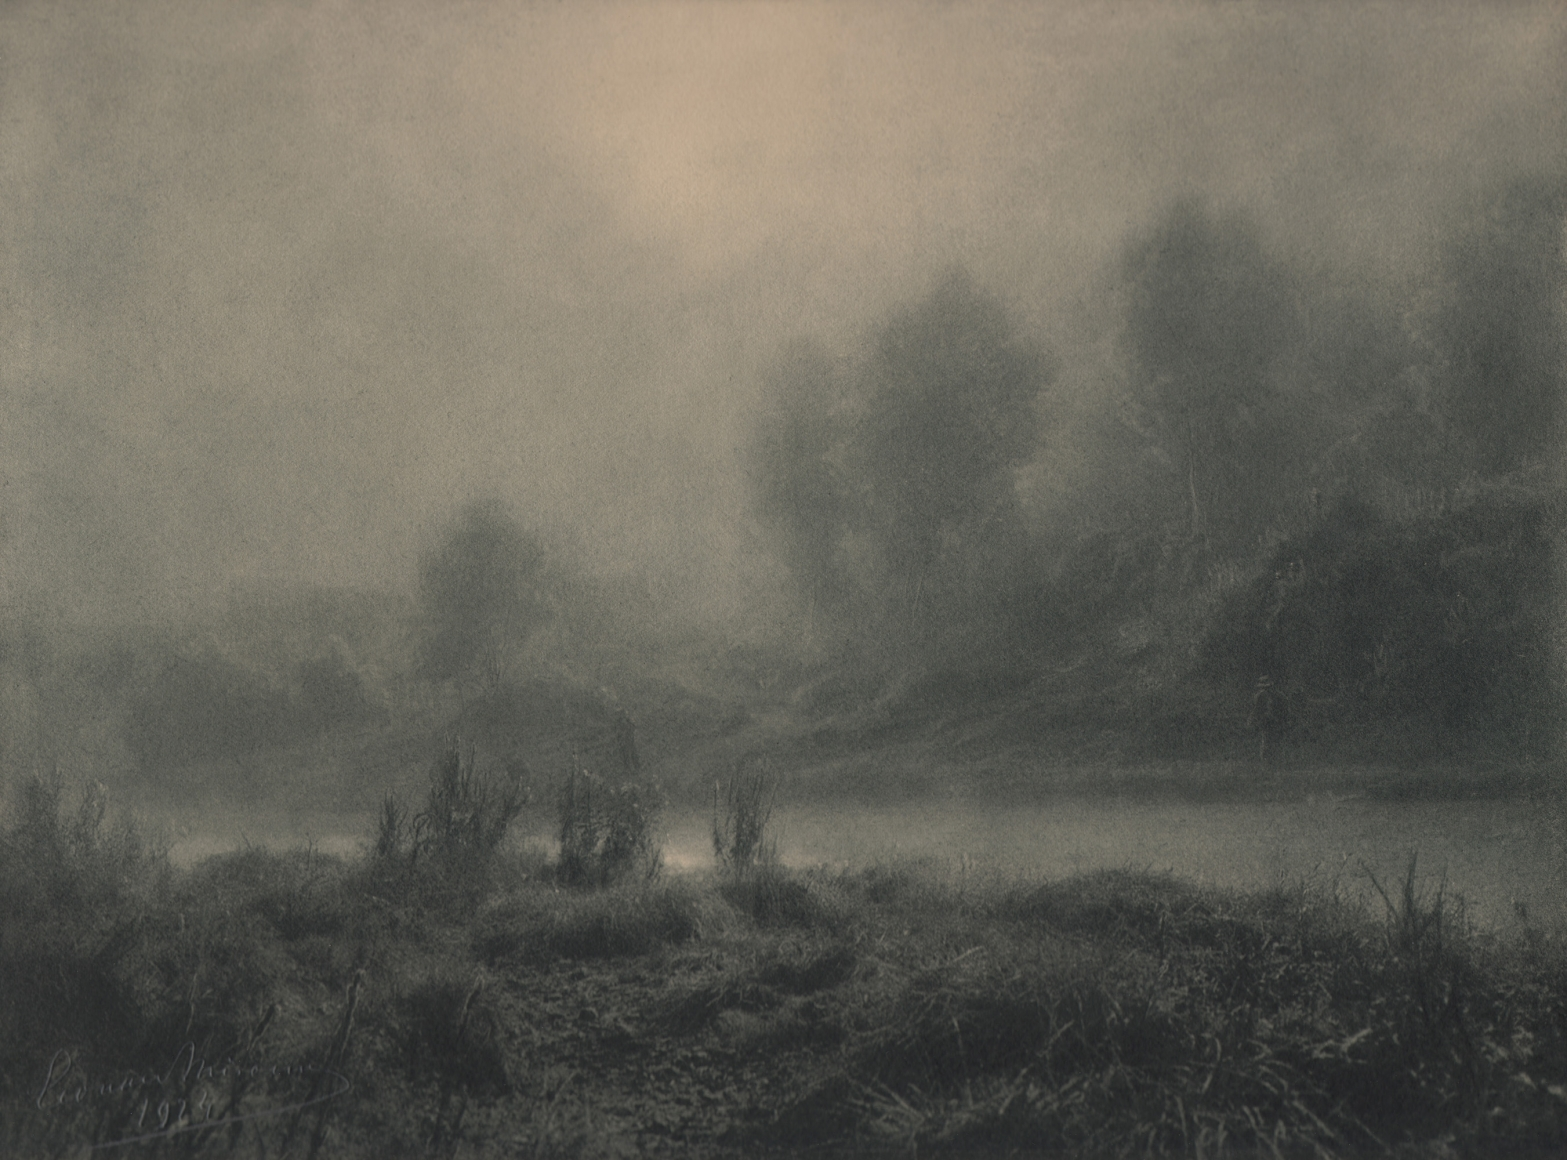 13. Léonard Misonne, Lever de soleil, c. 1924. Hazy sunrise alongside a river with brush and trees on either side. Gray/green-toned print.